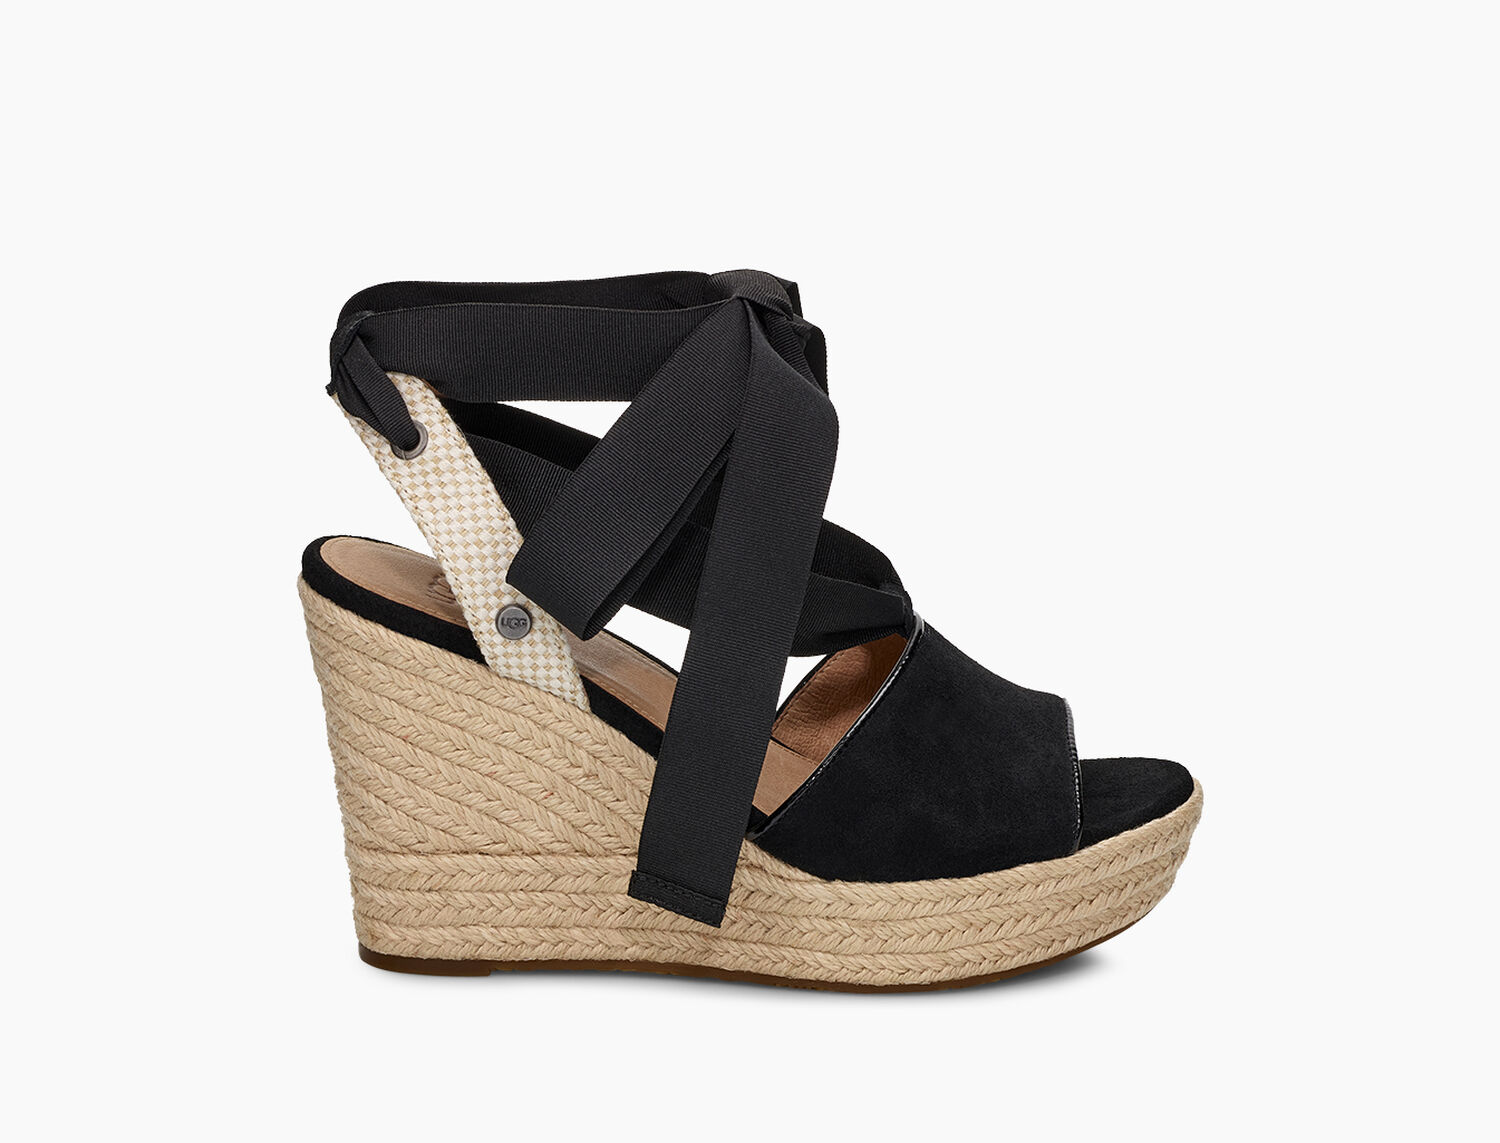 c32c9bce5b2 Women's Share this product Shiloh Wedge